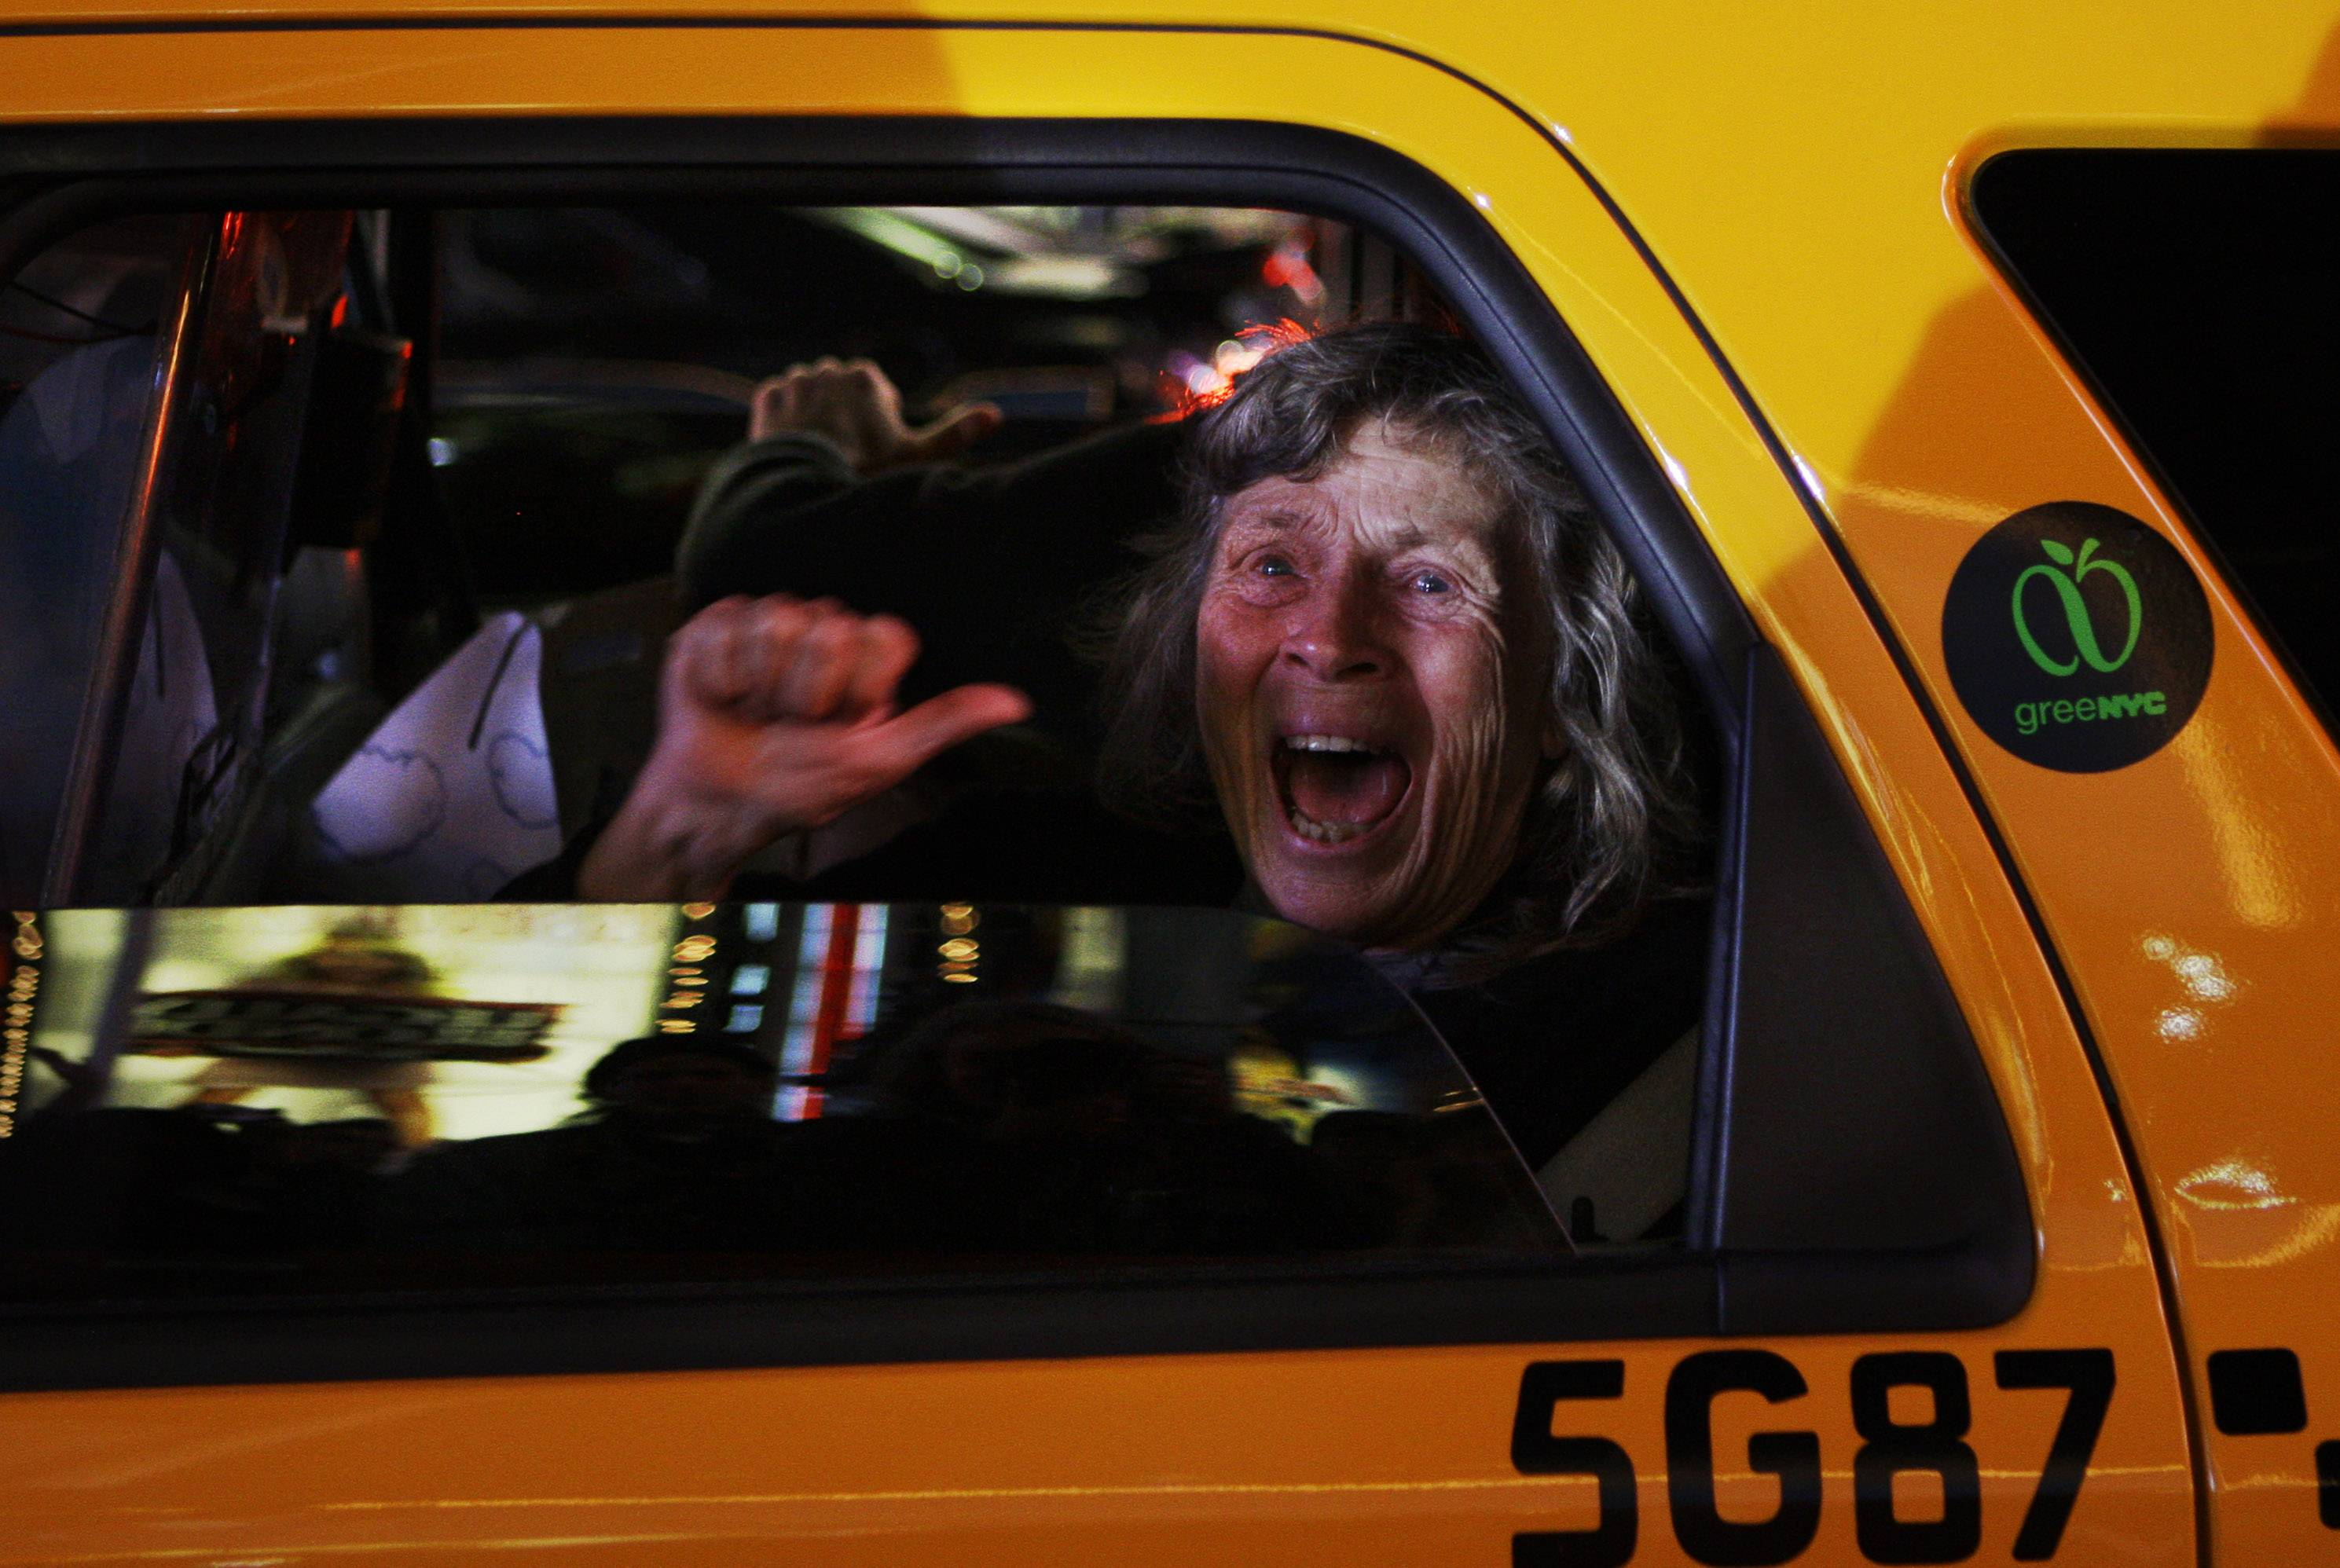 In this Tuesday, Nov. 4, 2008 file photo made by Associated Press photographer Anja Niedringhaus, a woman reacts while sitting in a New York taxi as different television networks call the presidential race for Barack Obama, in New York.